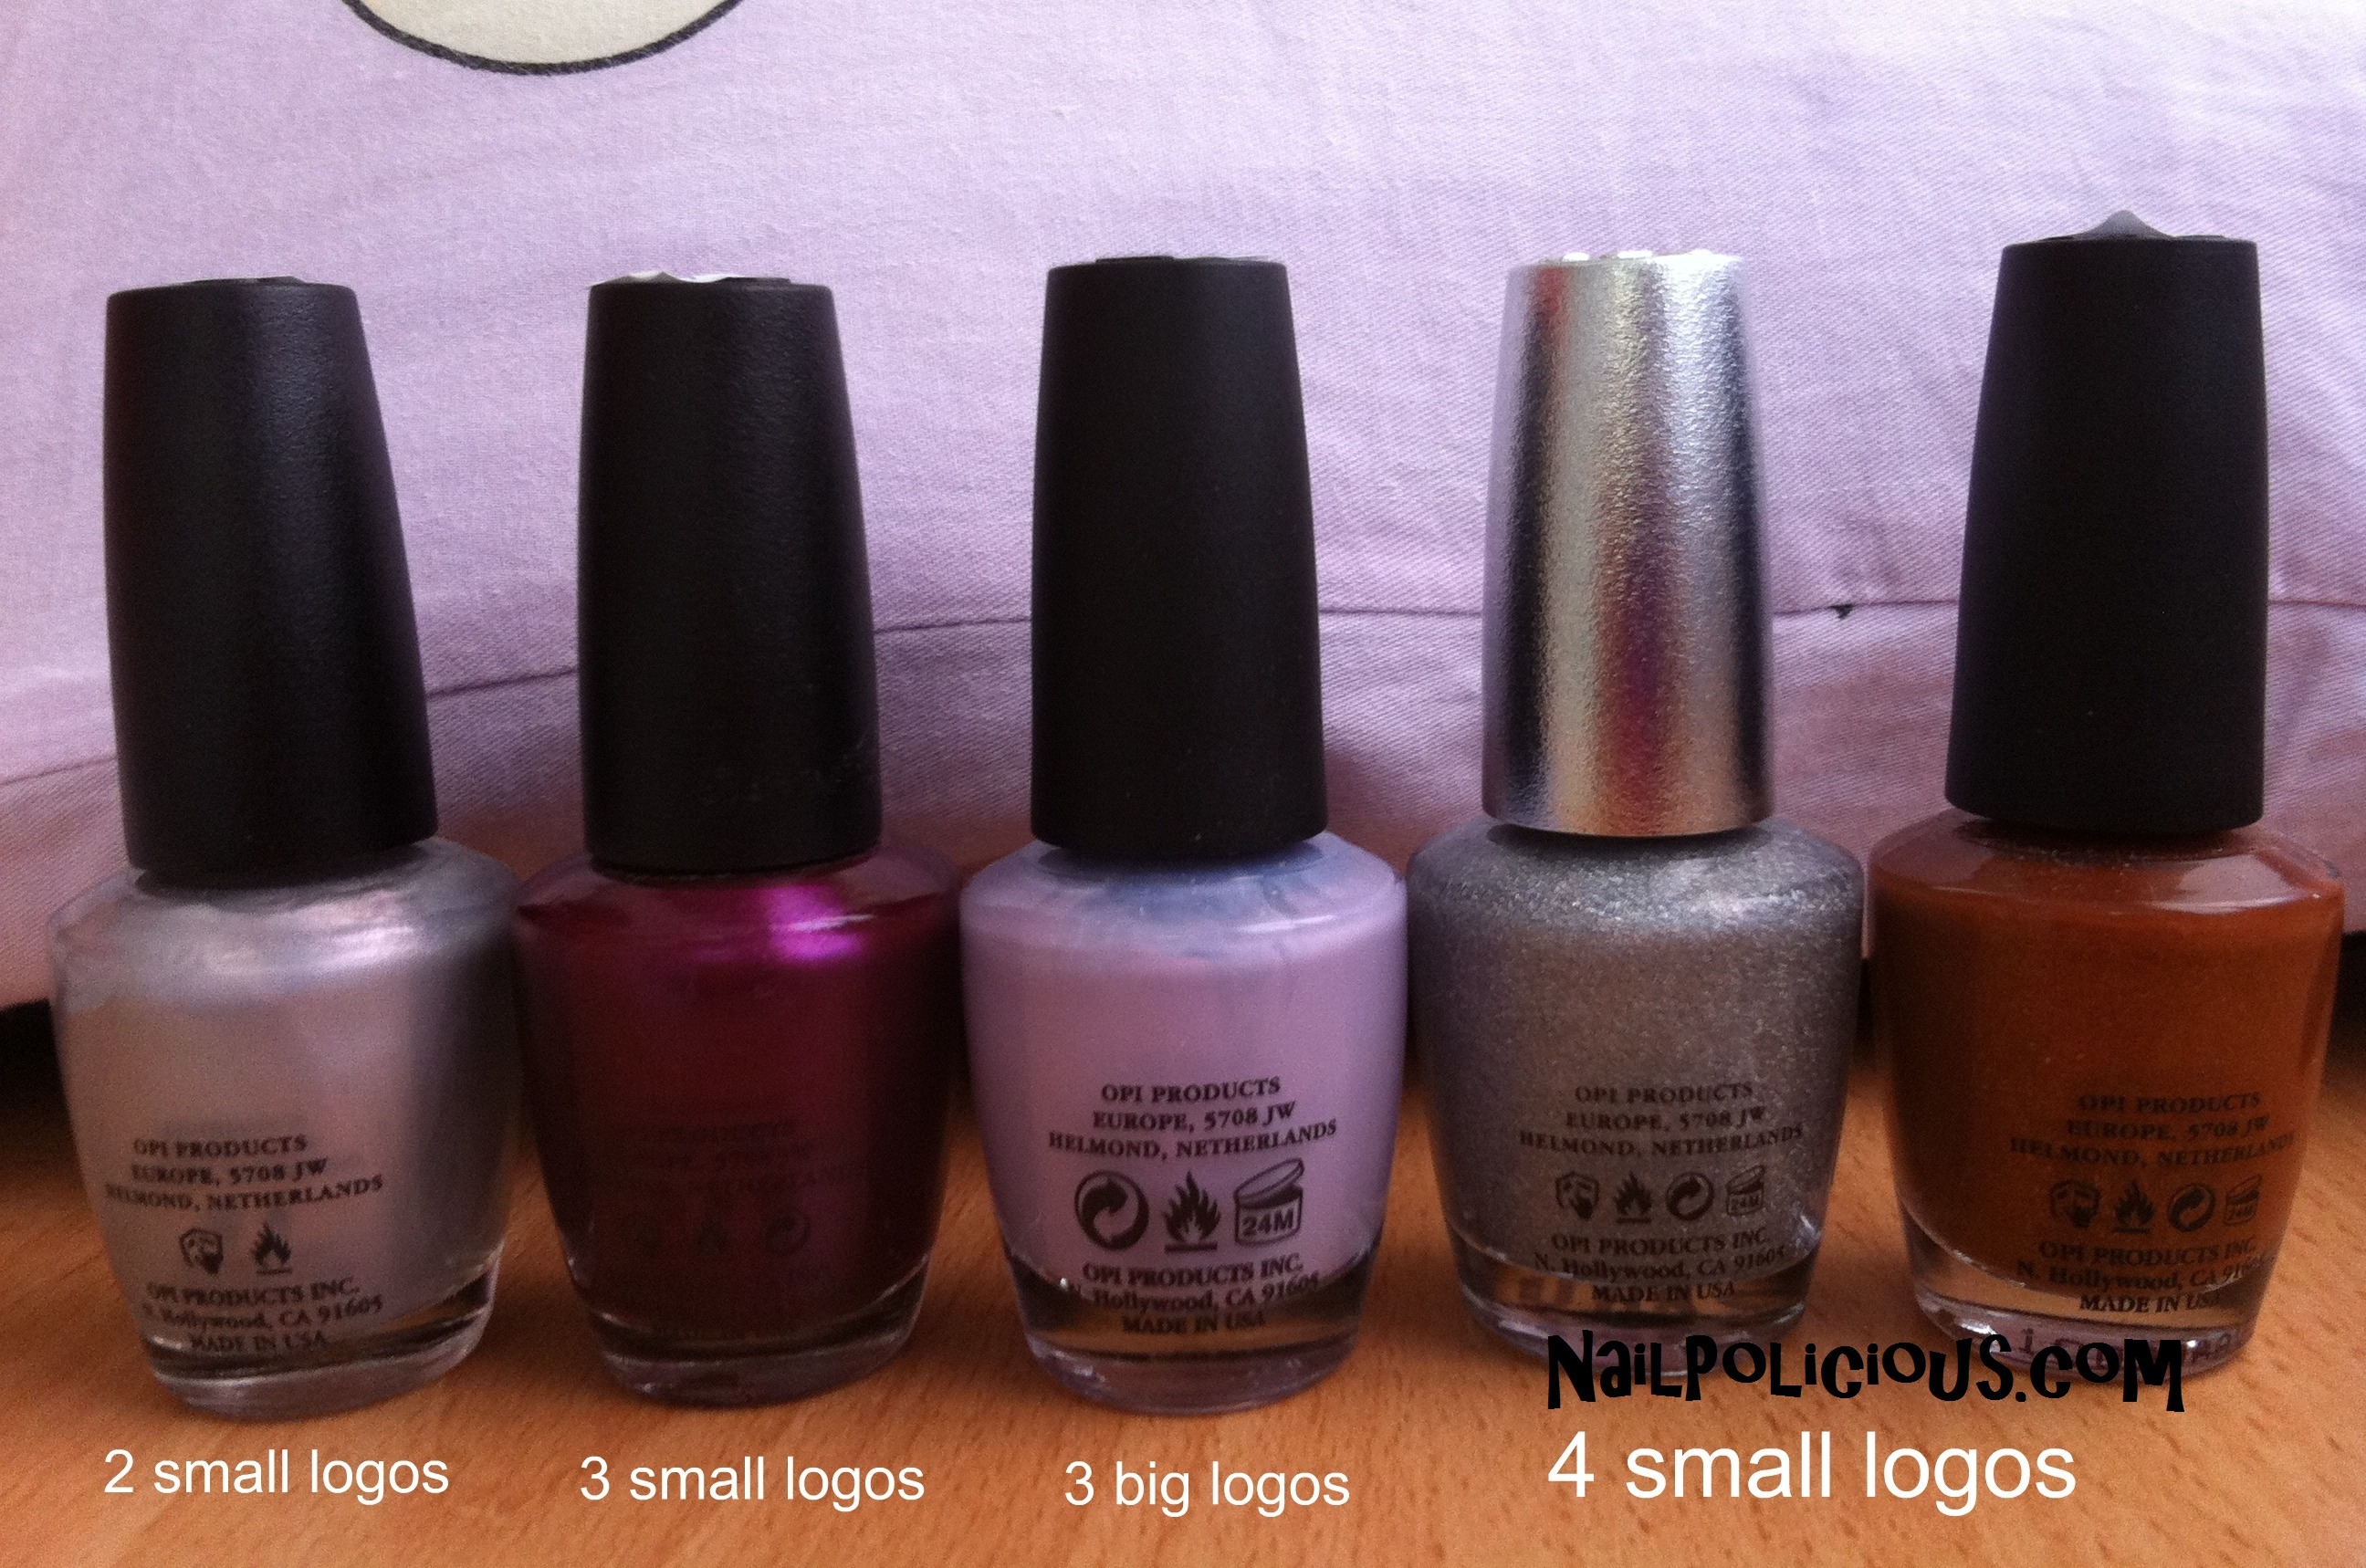 How to check the authencity of your OPI? | NailPolicious